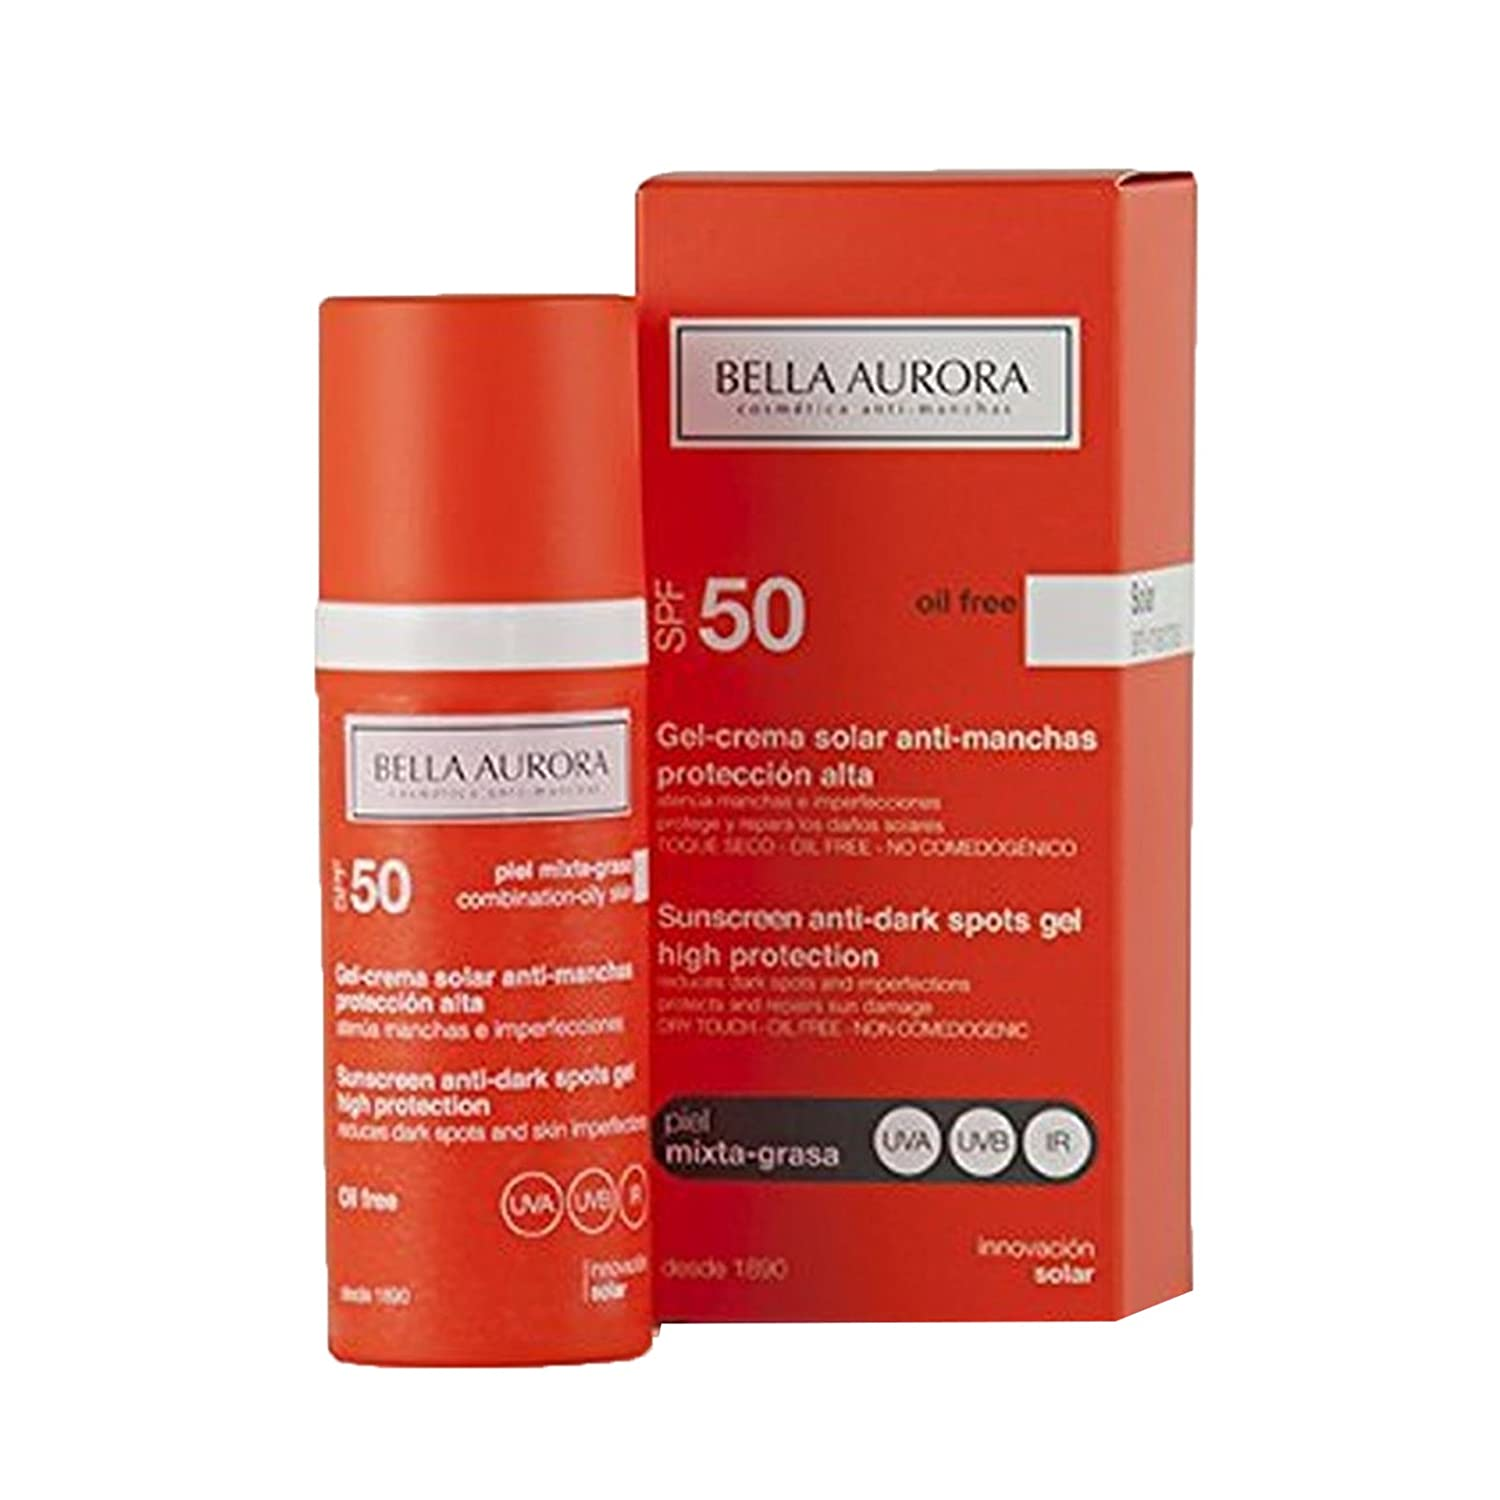 Bella Aurora Solar Anti-Stain Gel with Sunscreen SPF 50 for Combination or Oily Skin 8413400003113